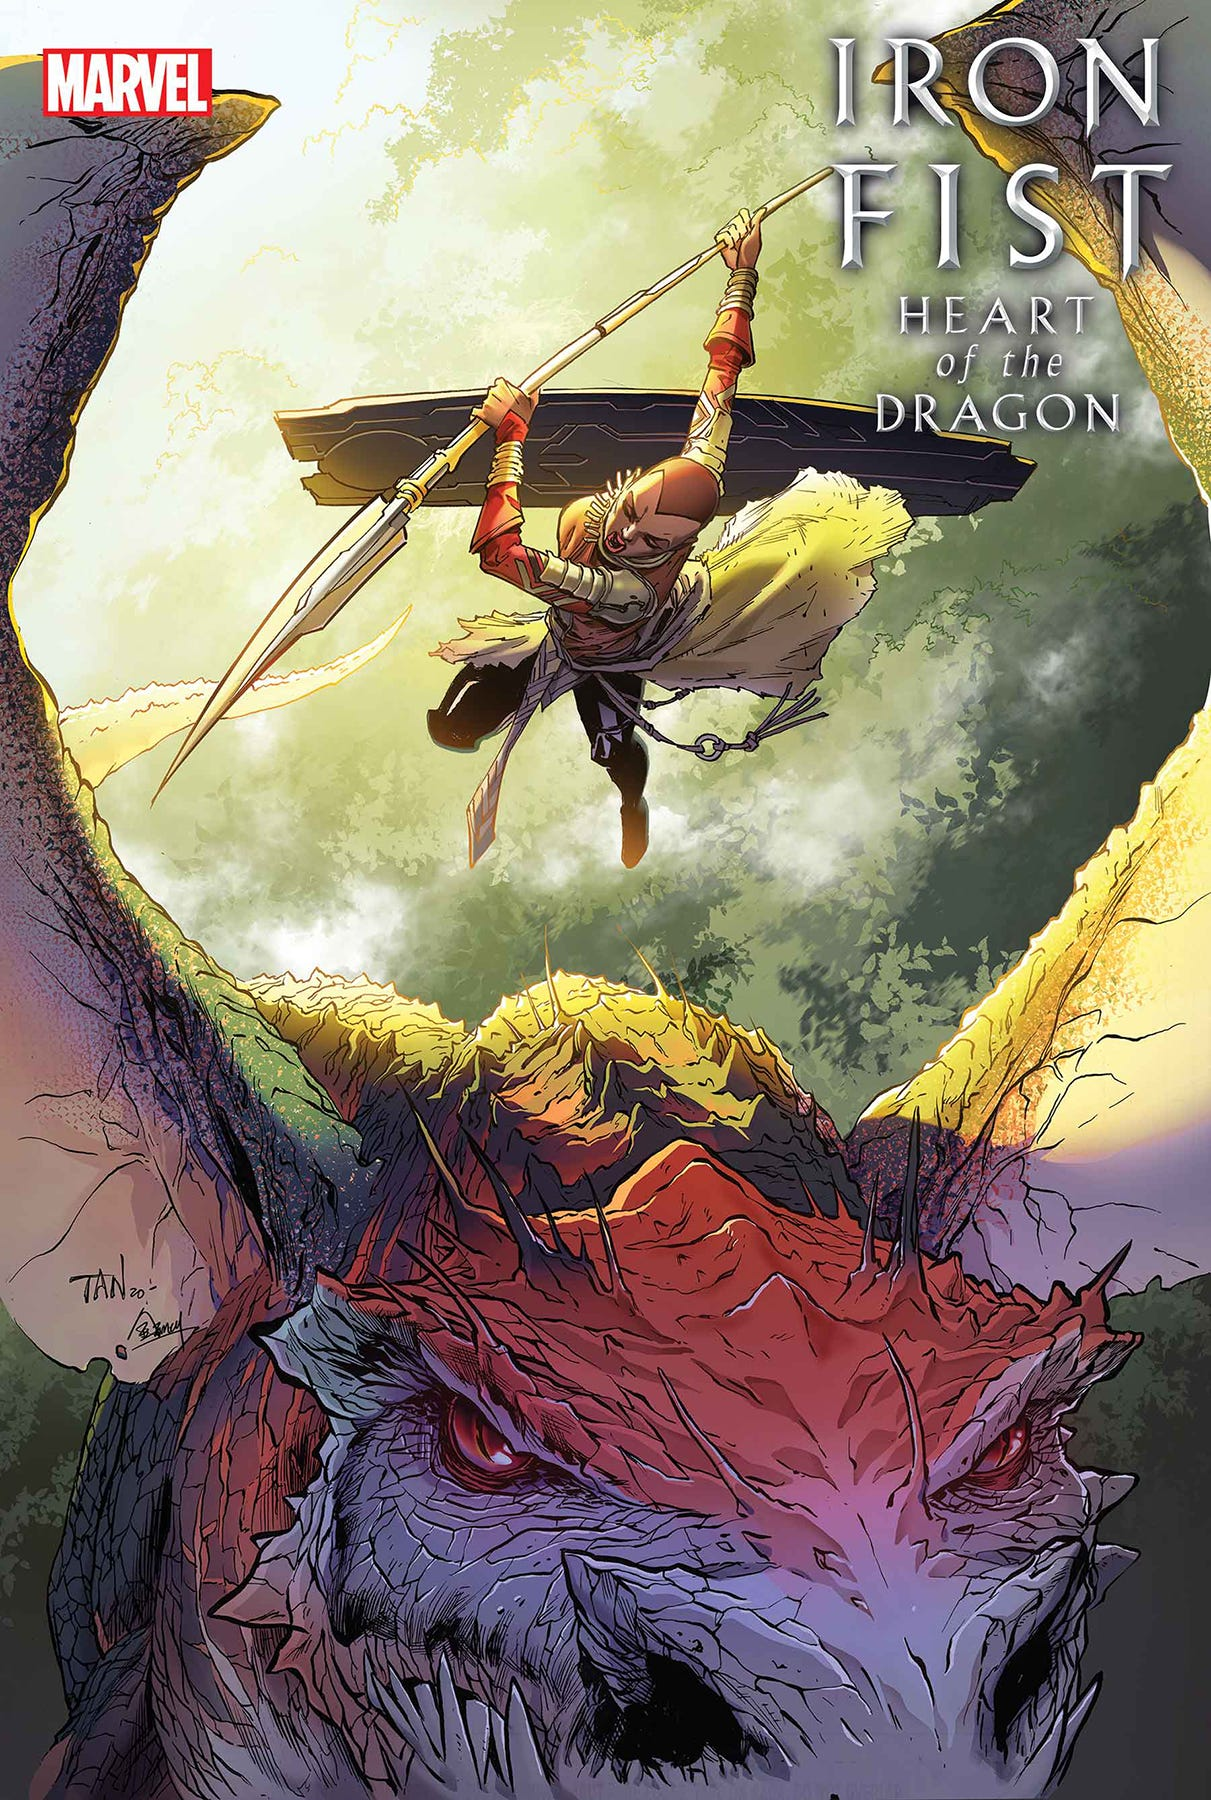 Iron Fist Heart of Dragon #3 (of 6)